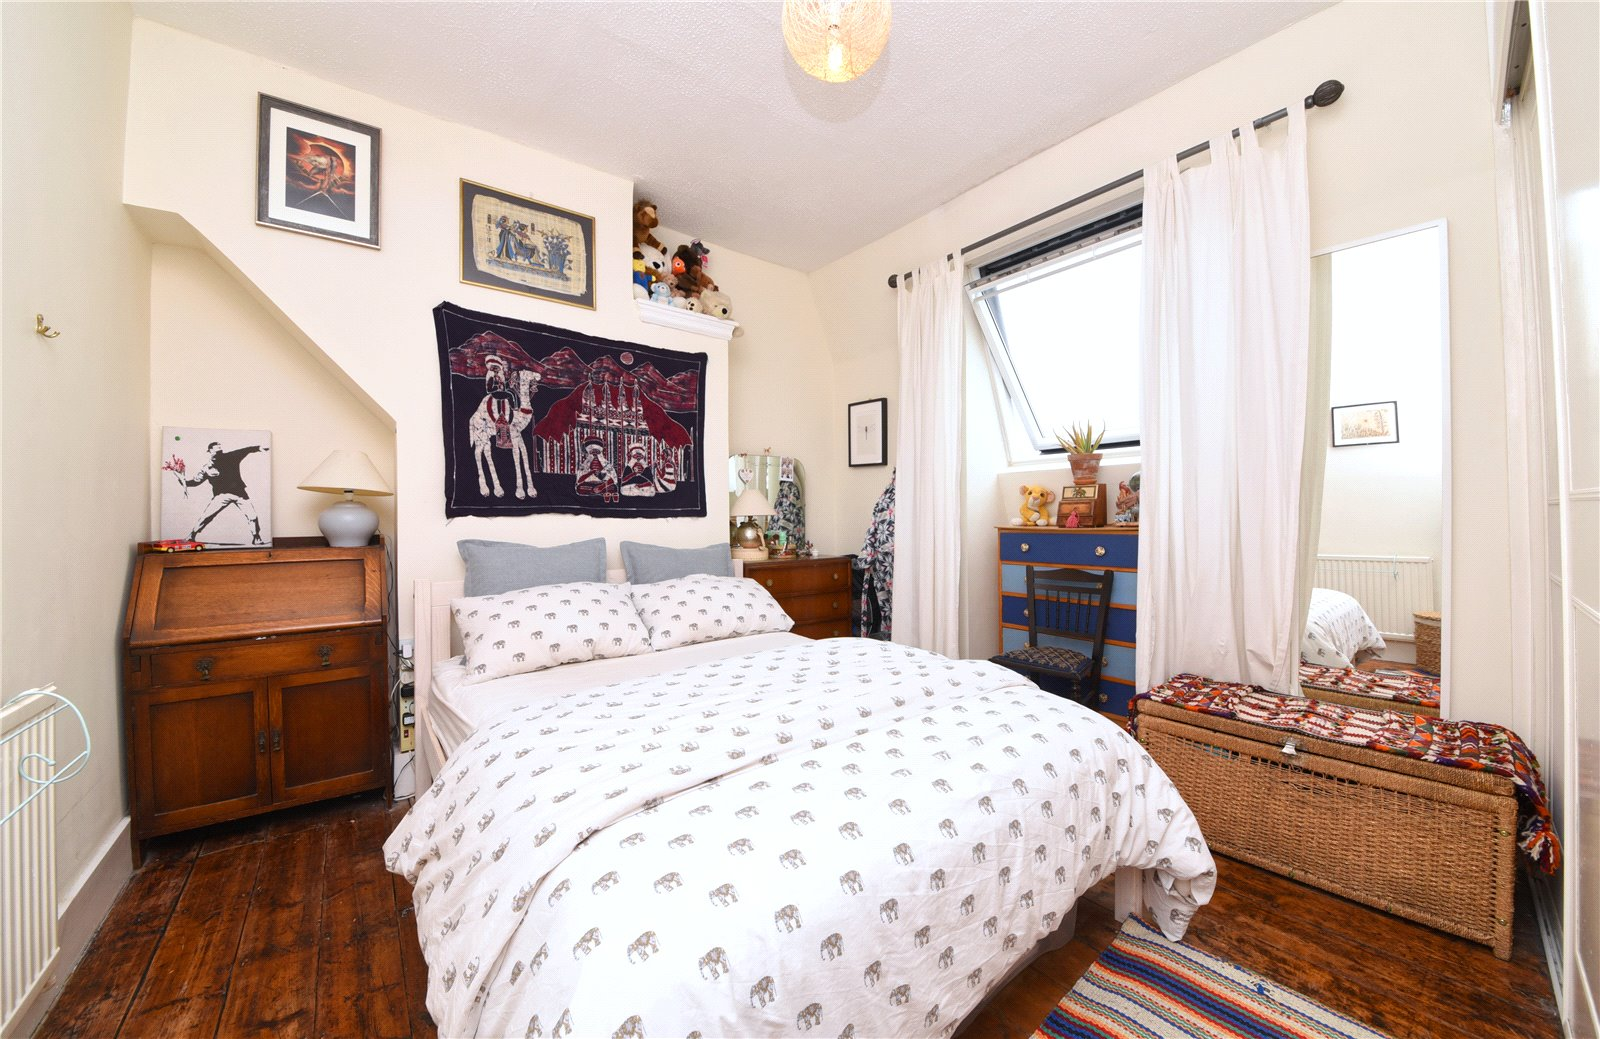 1 bed apartment for sale in New Barnet, EN5 5HW, EN5